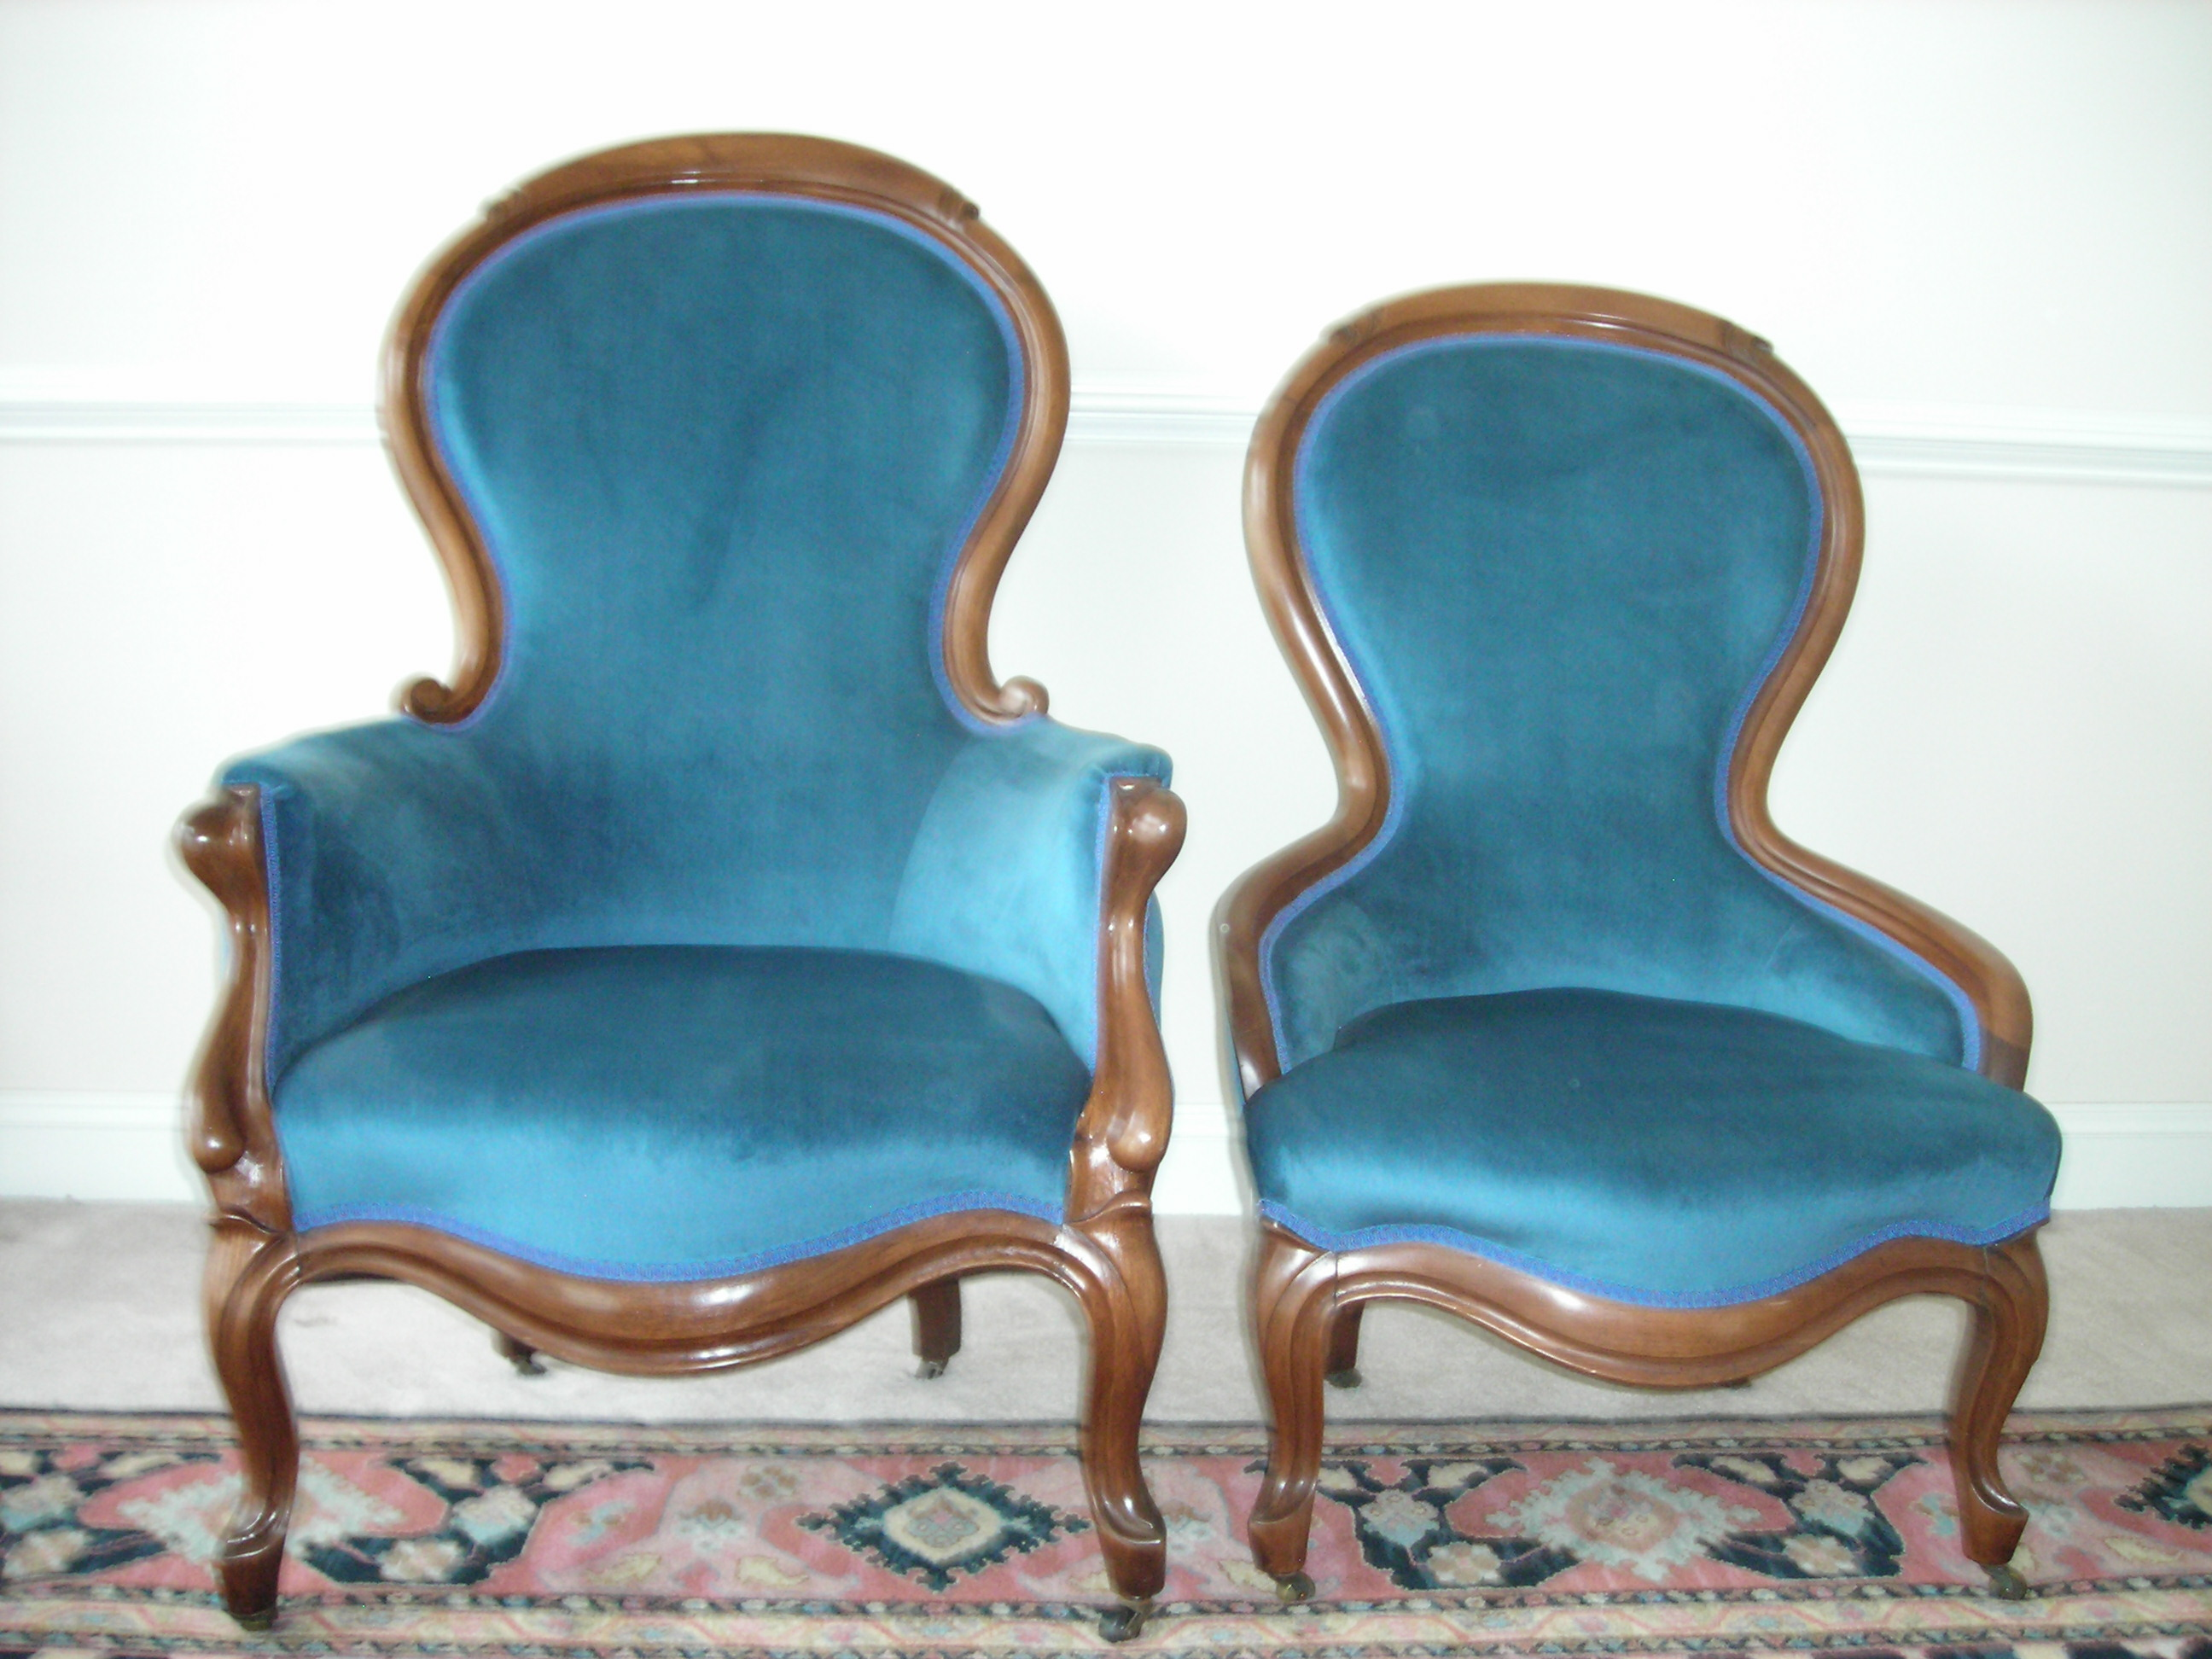 Victorian Gentlemanu0027s (L) And Ladyu0027s (R) Chairs